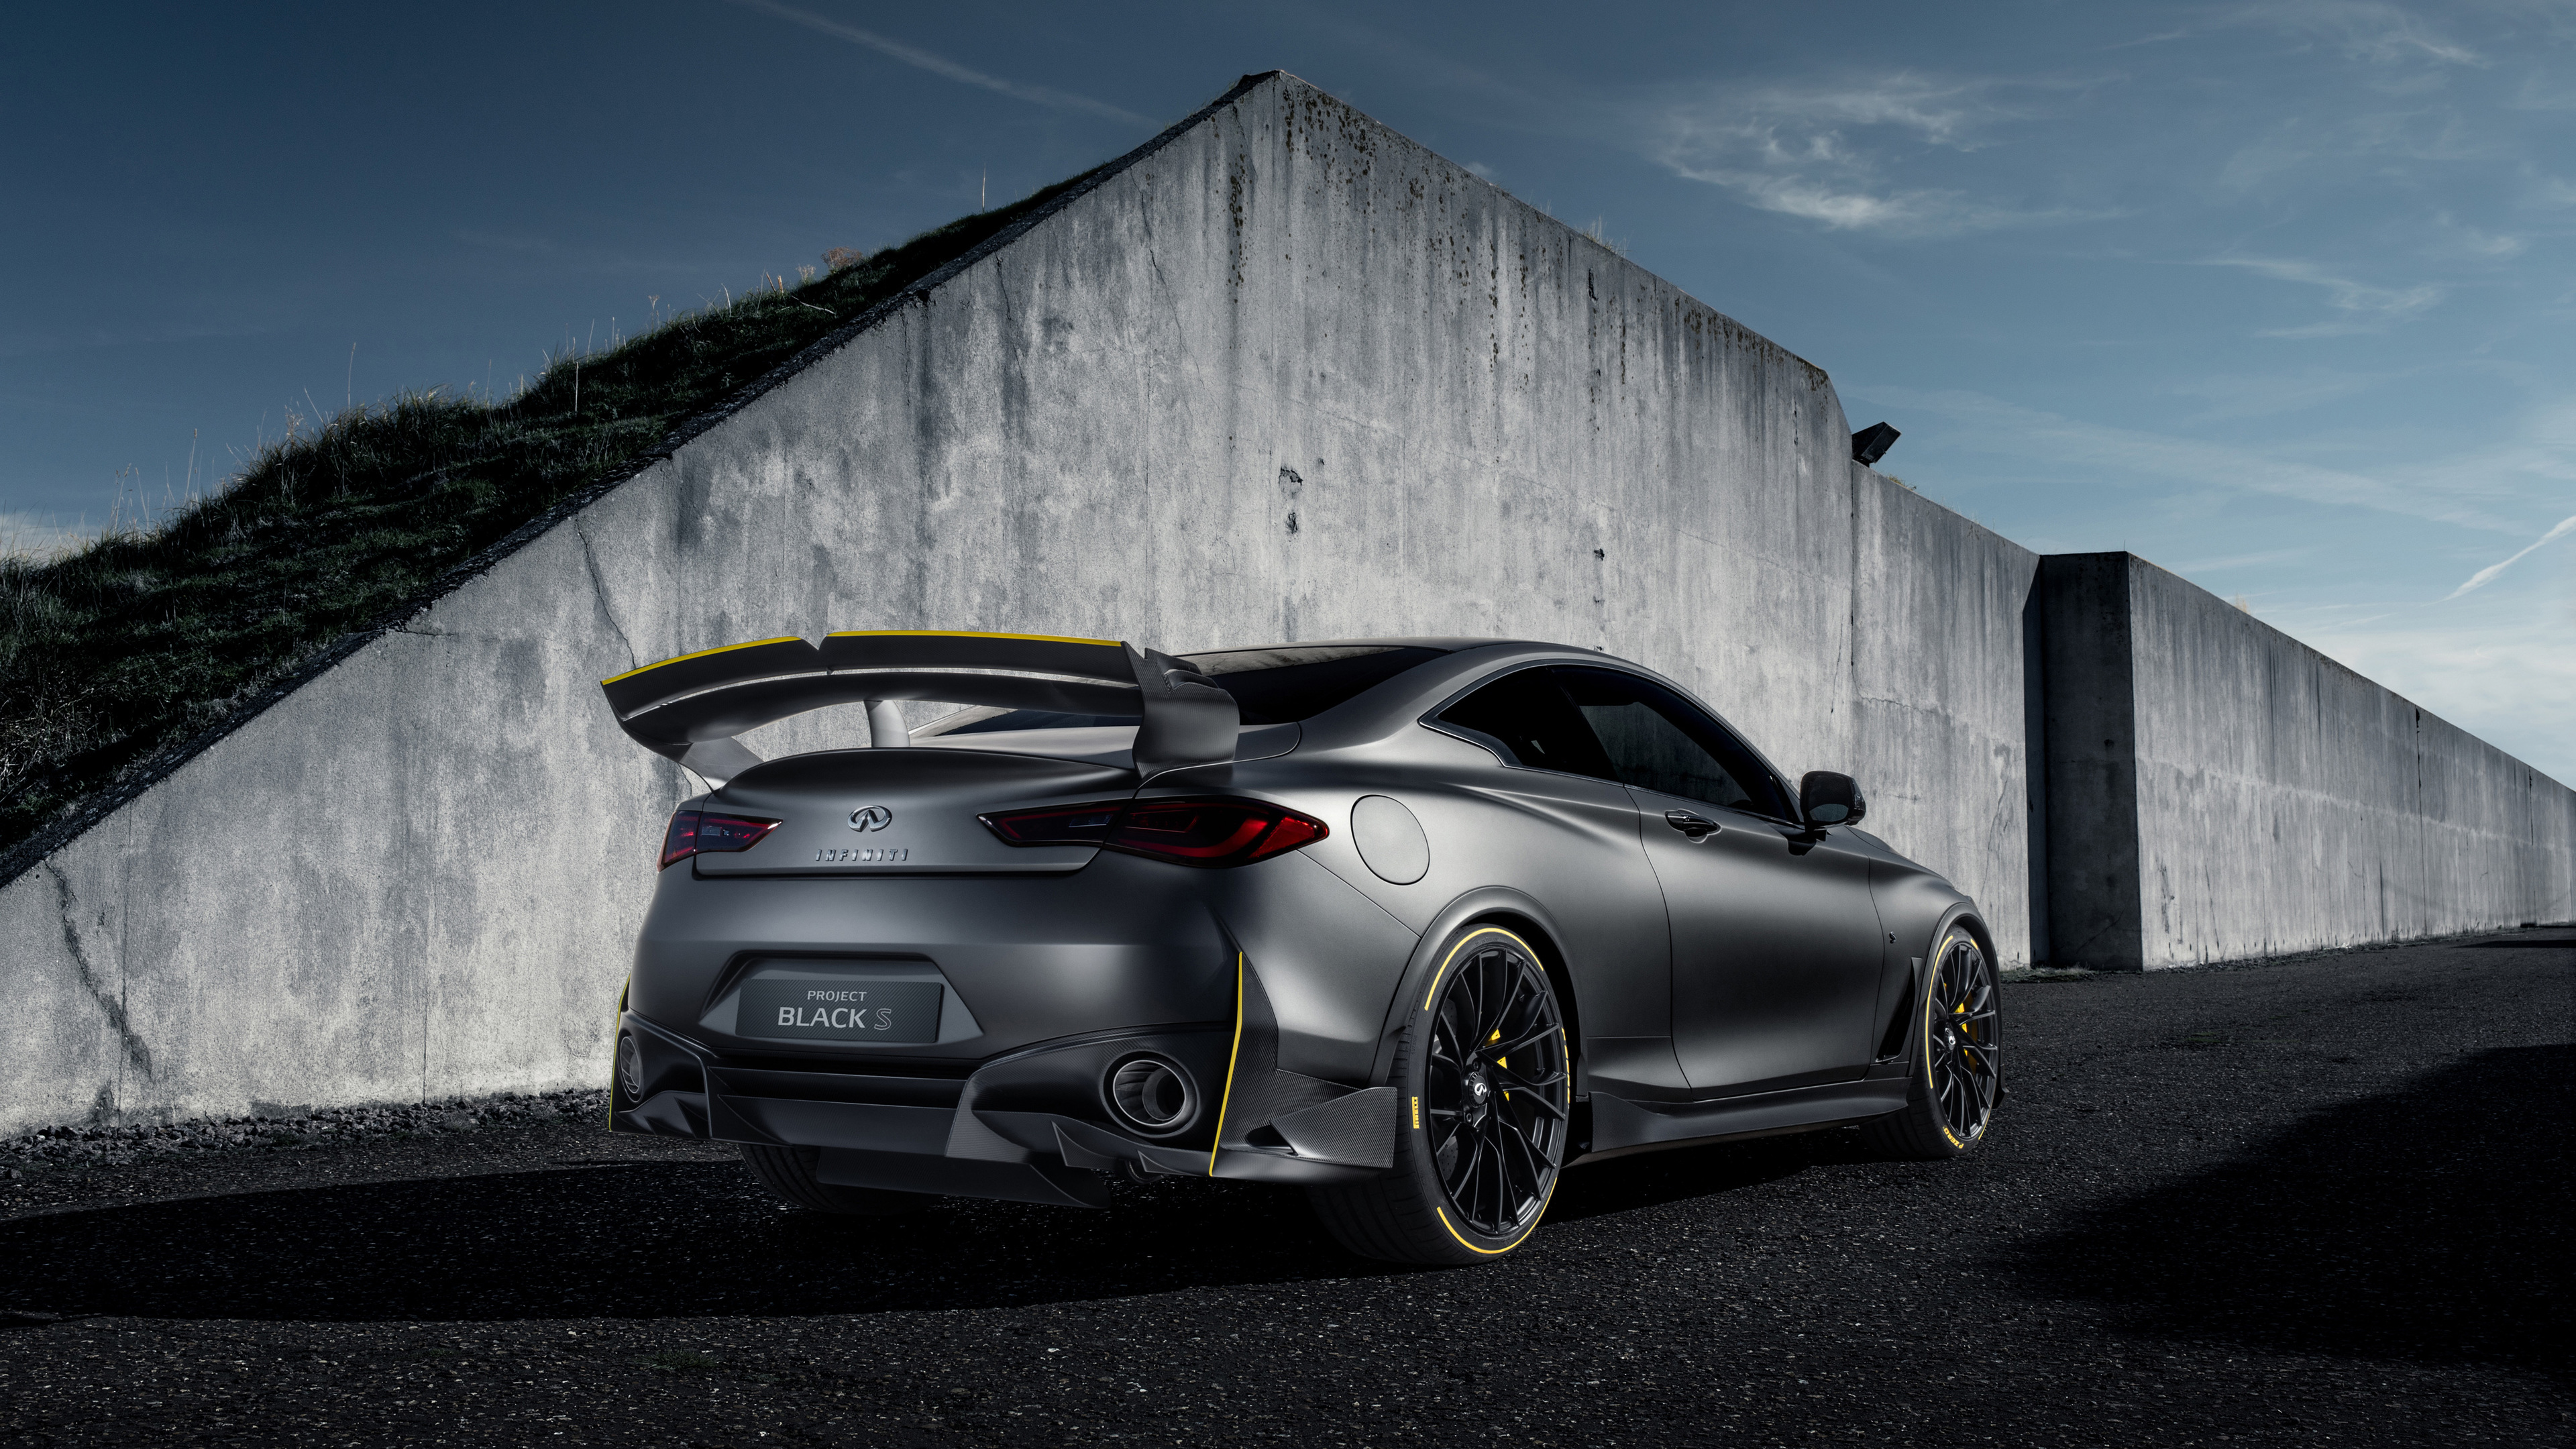 infiniti project black s prototype 2018 rear 1539792842 - Infiniti Project Black S Prototype 2018 Rear - infiniti wallpapers, hd-wallpapers, cars wallpapers, 4k-wallpapers, 2018 cars wallpapers